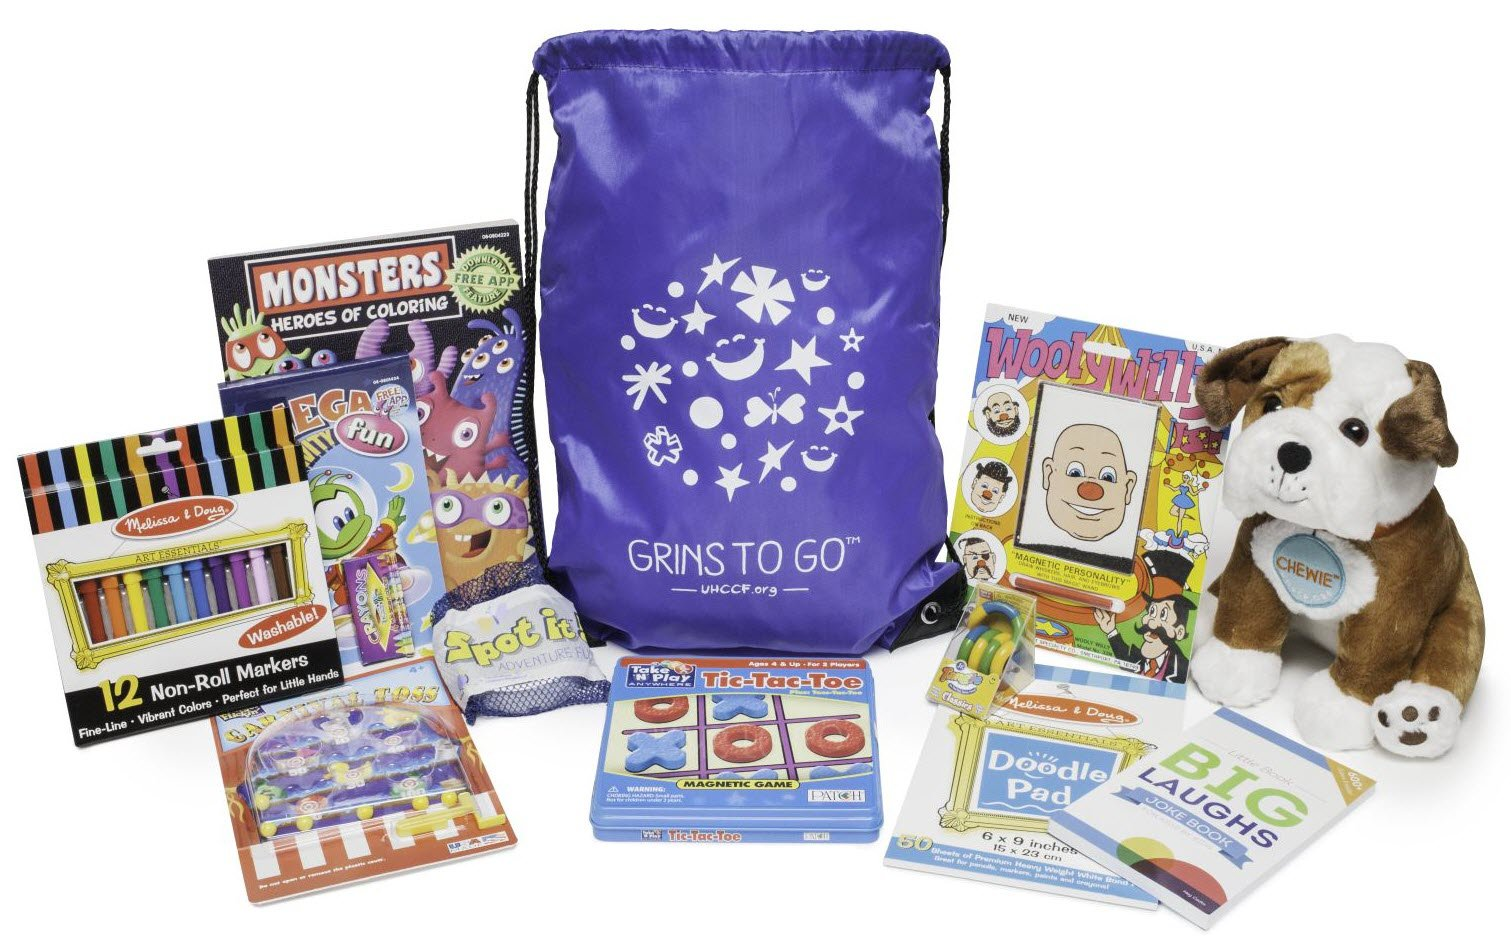 United Healthcare Children's Foundation Grins to Go Bag - A Gift Bag of Toys, Games and Activities for Boys and Girls